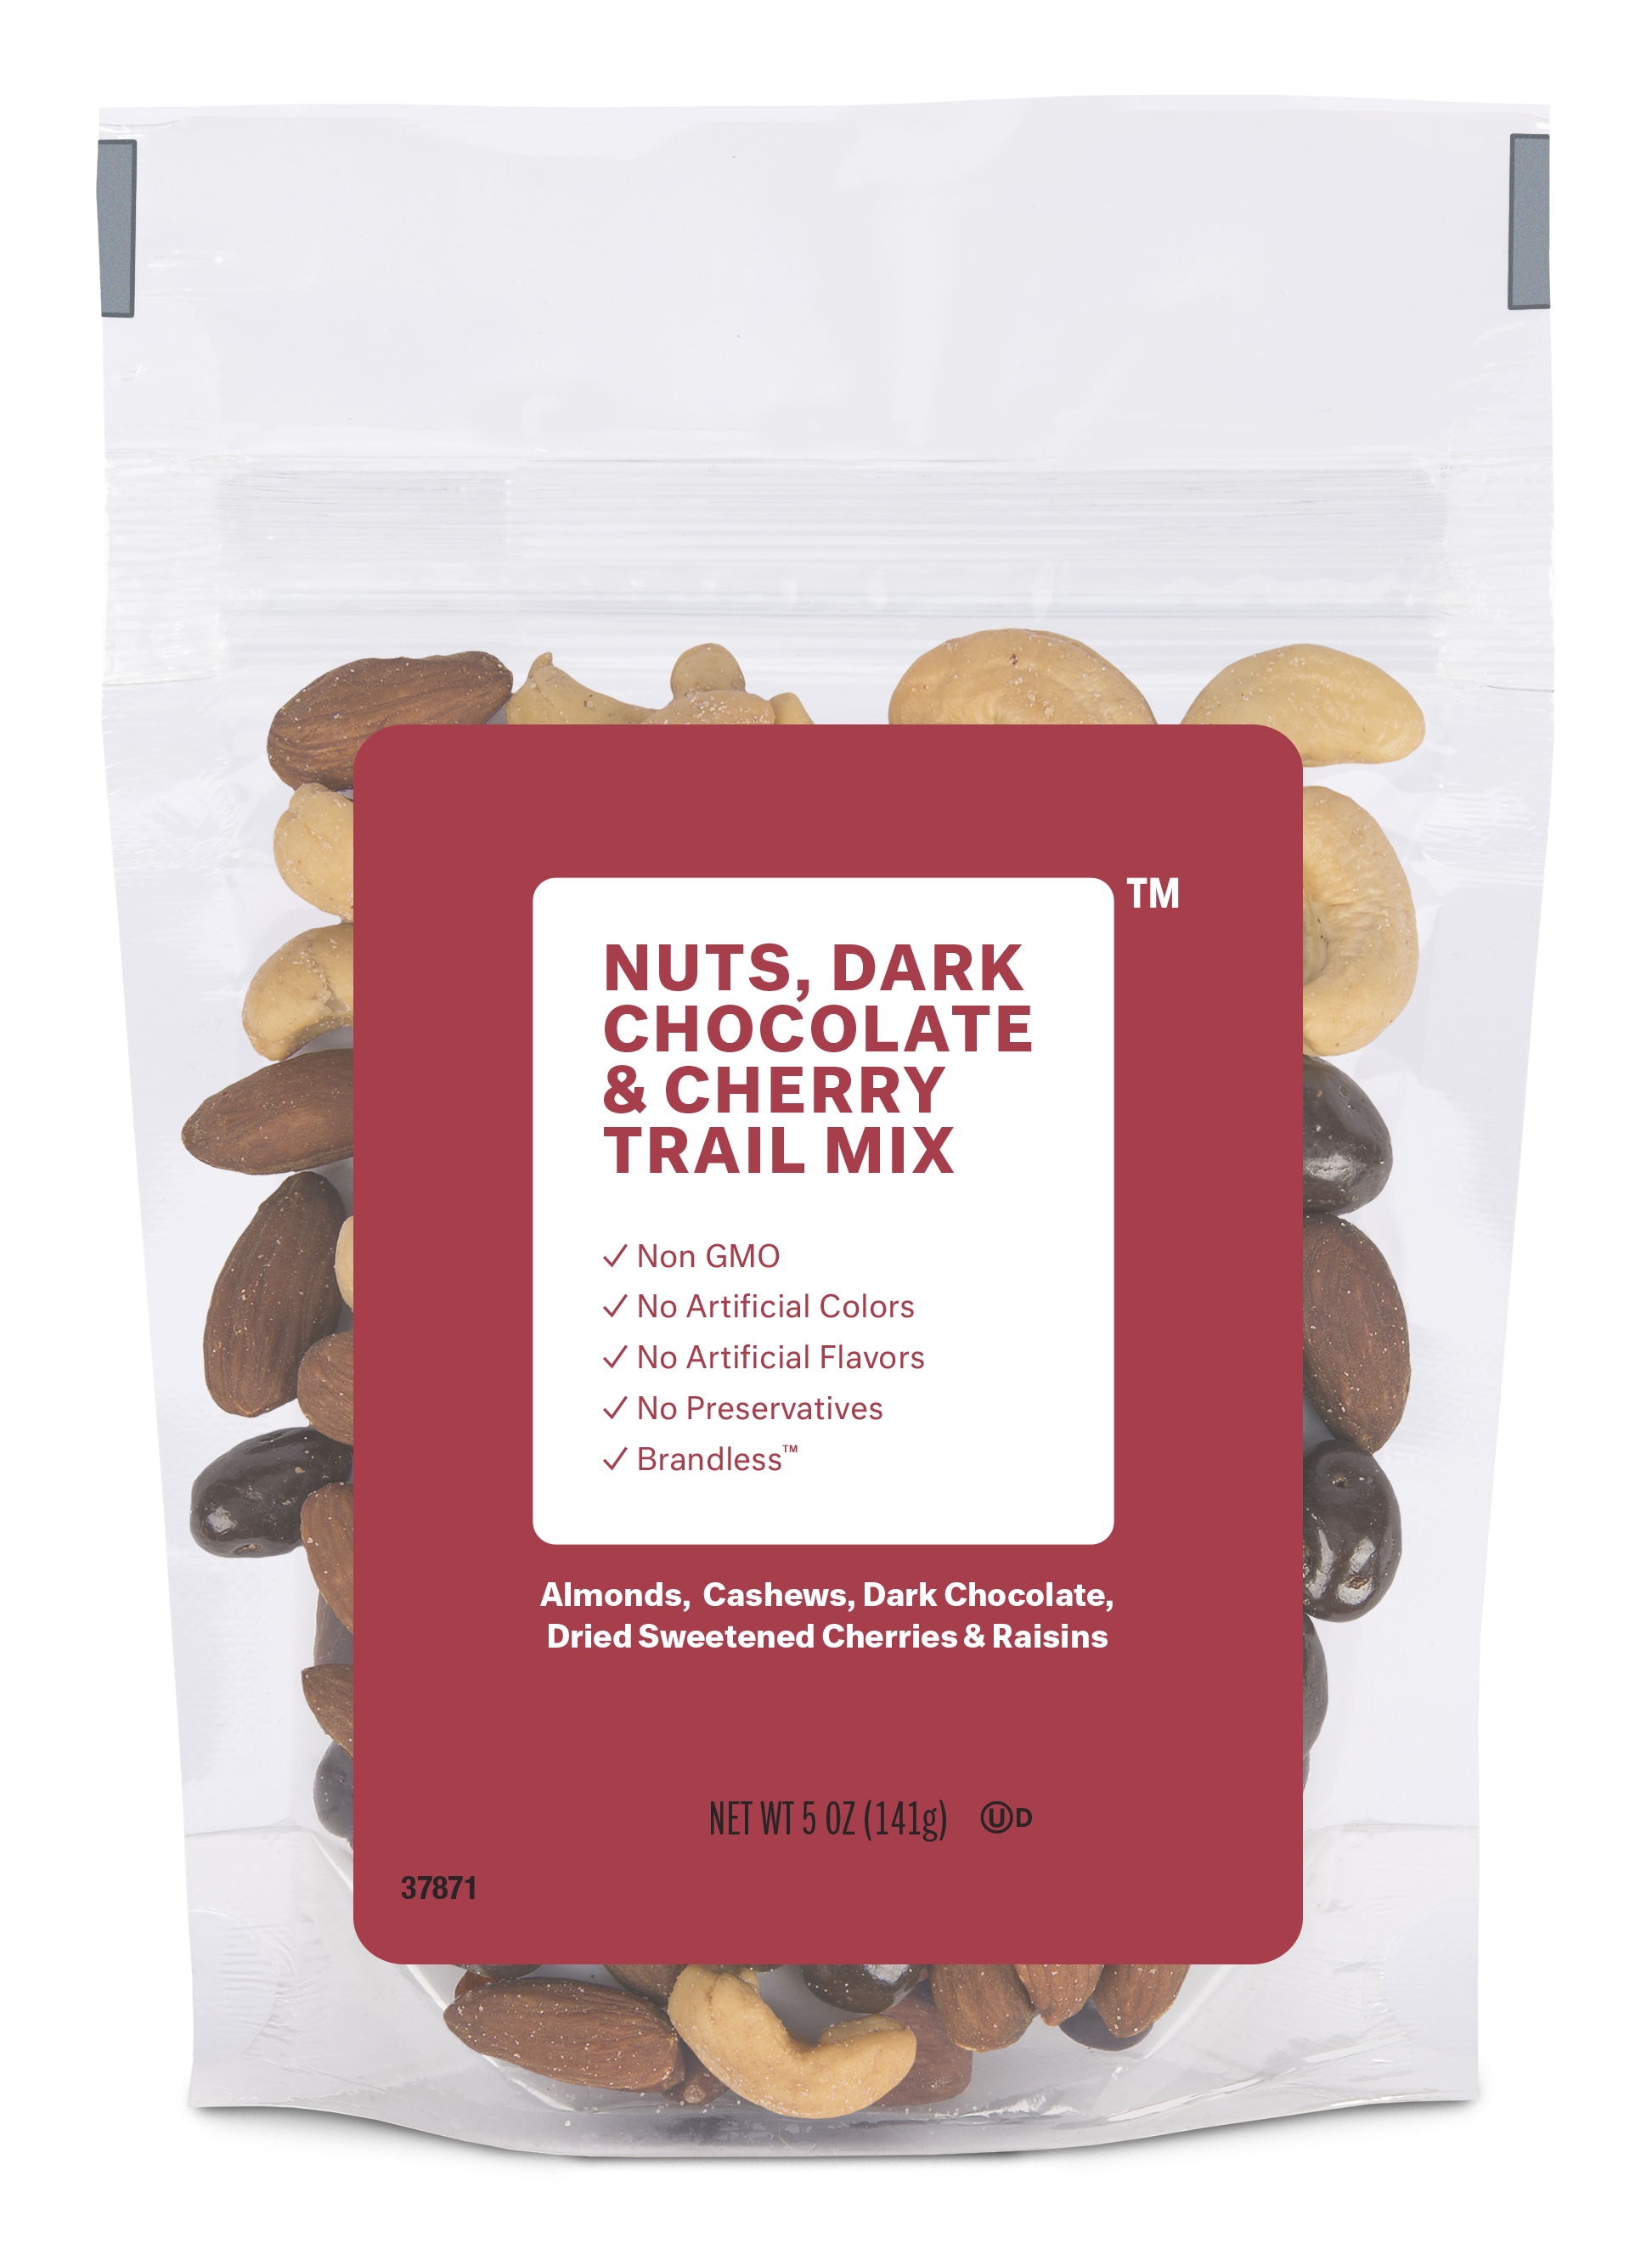 Brandless: Nuts, Dark Chocolate & Cherry Trail Mix